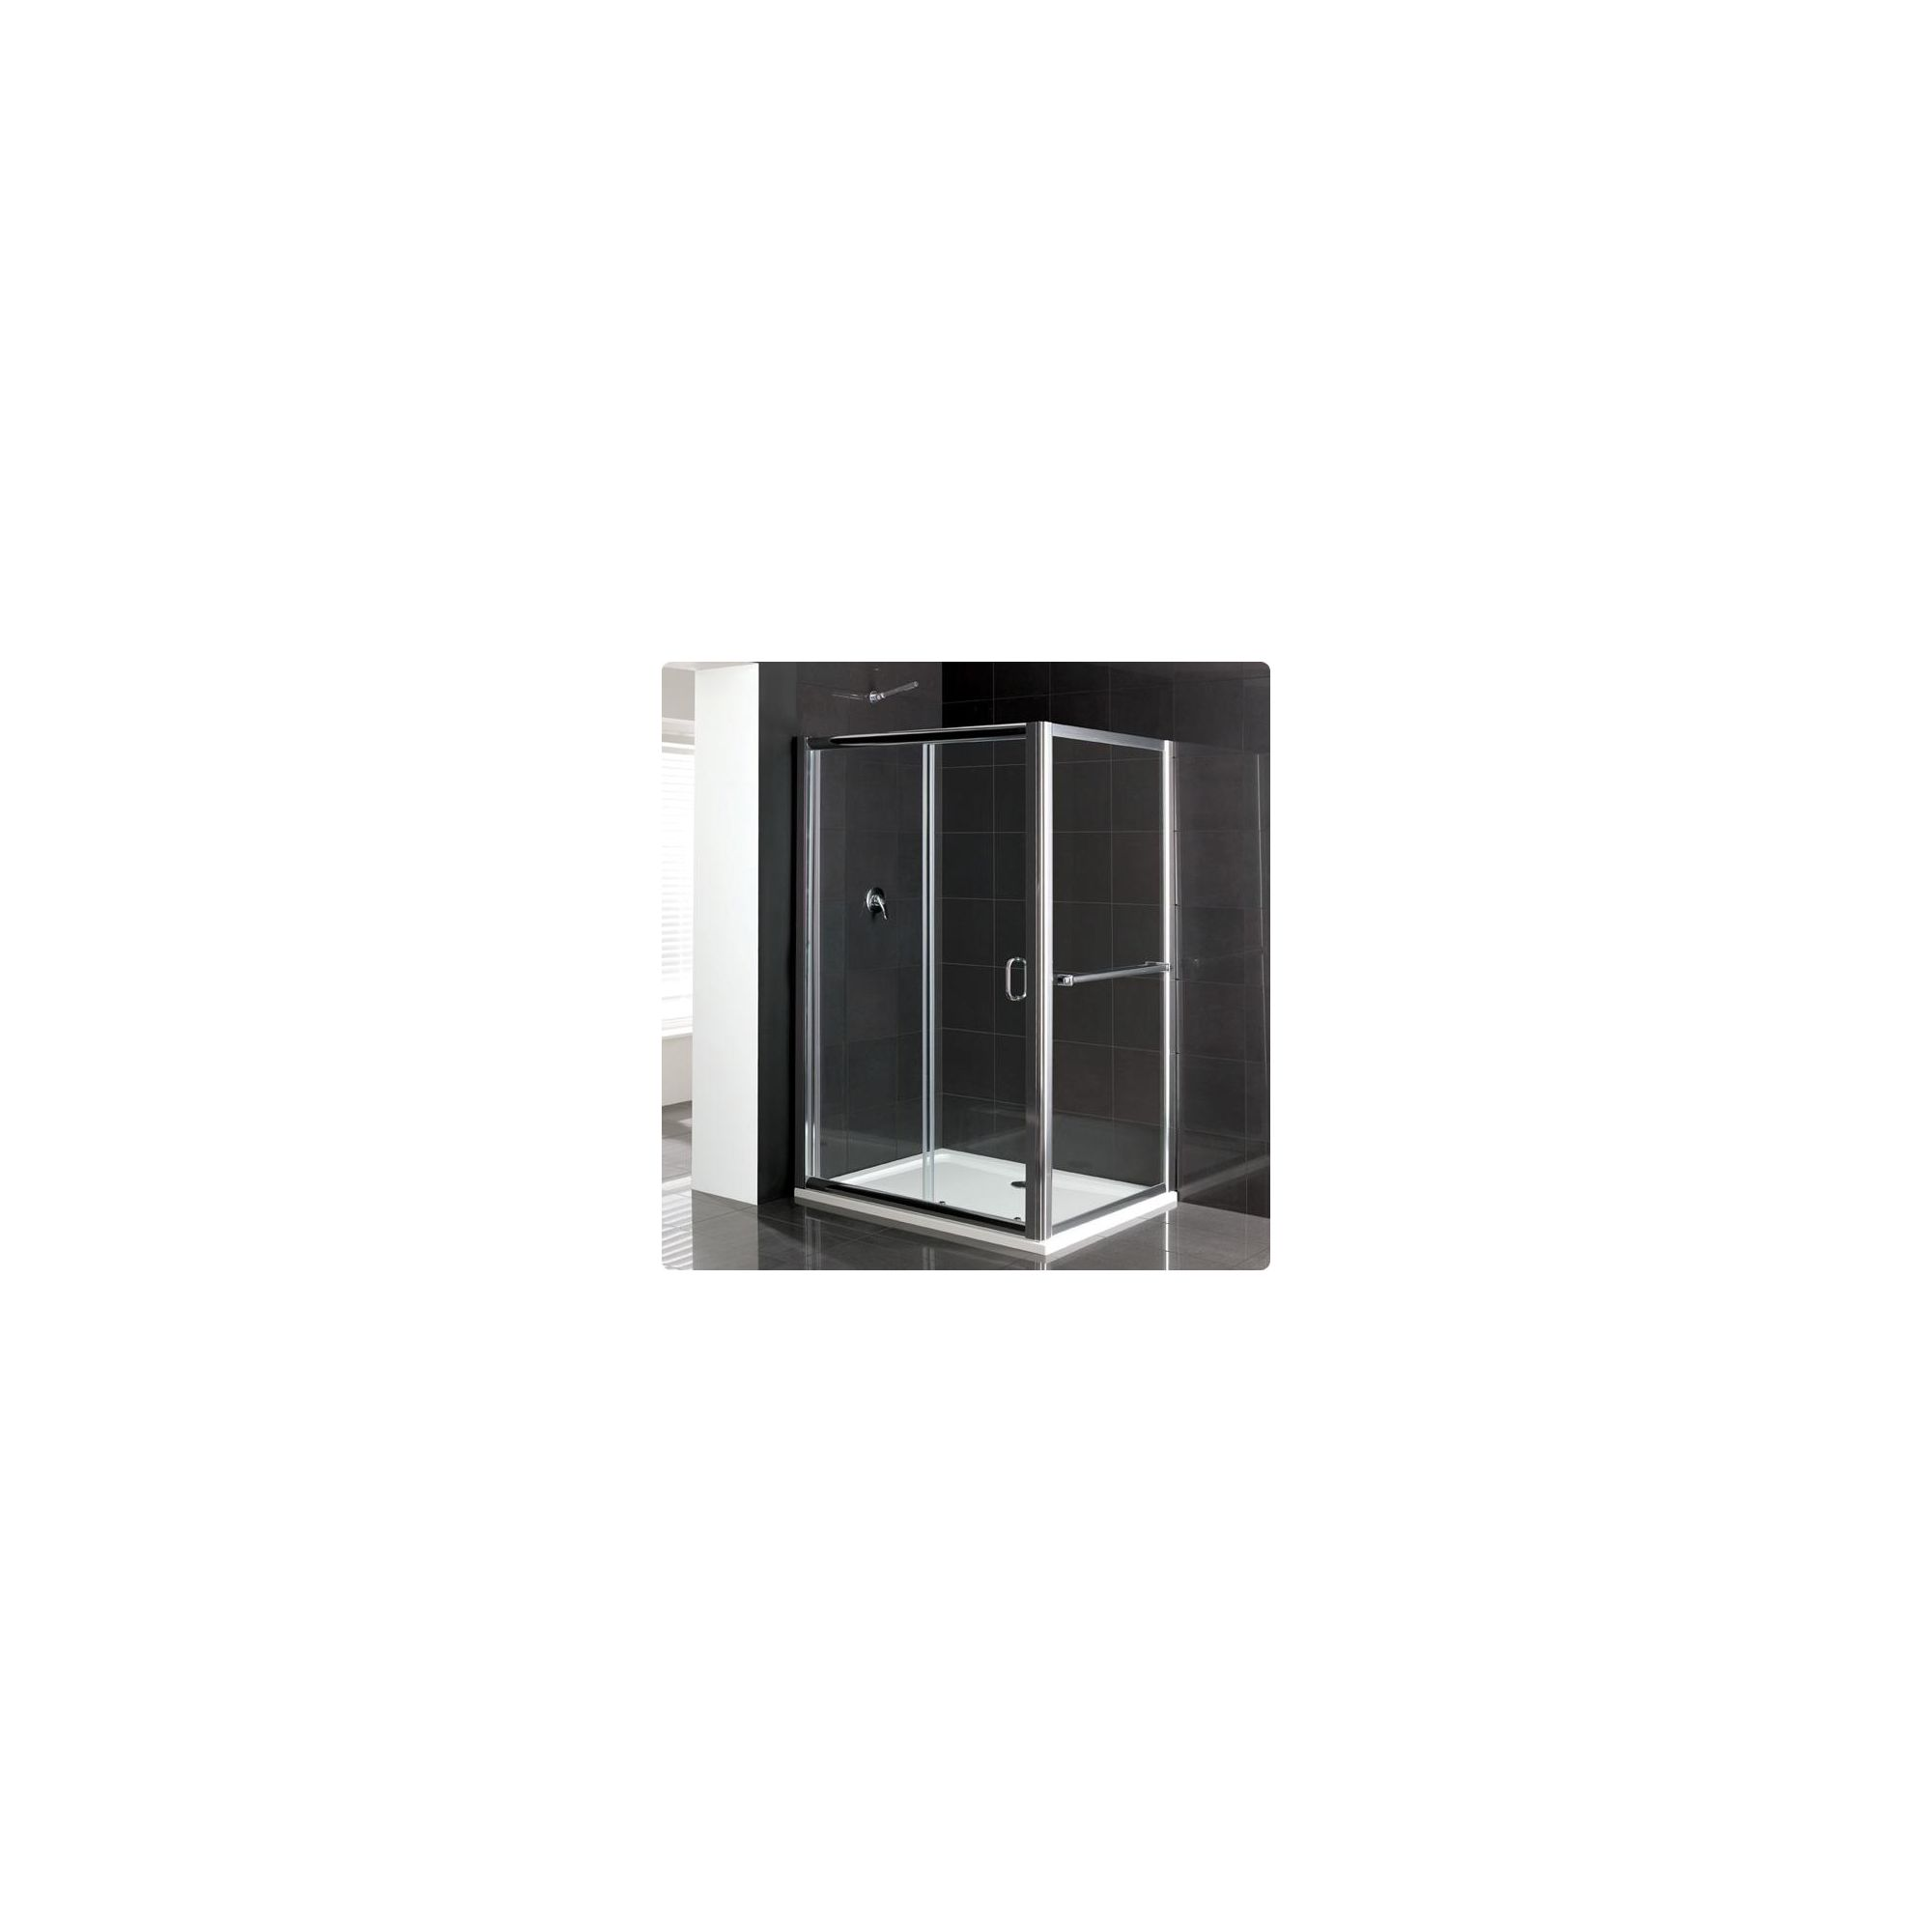 Duchy Elite Silver Sliding Door Shower Enclosure, 1400mm x 800mm, Standard Tray, 6mm Glass at Tescos Direct